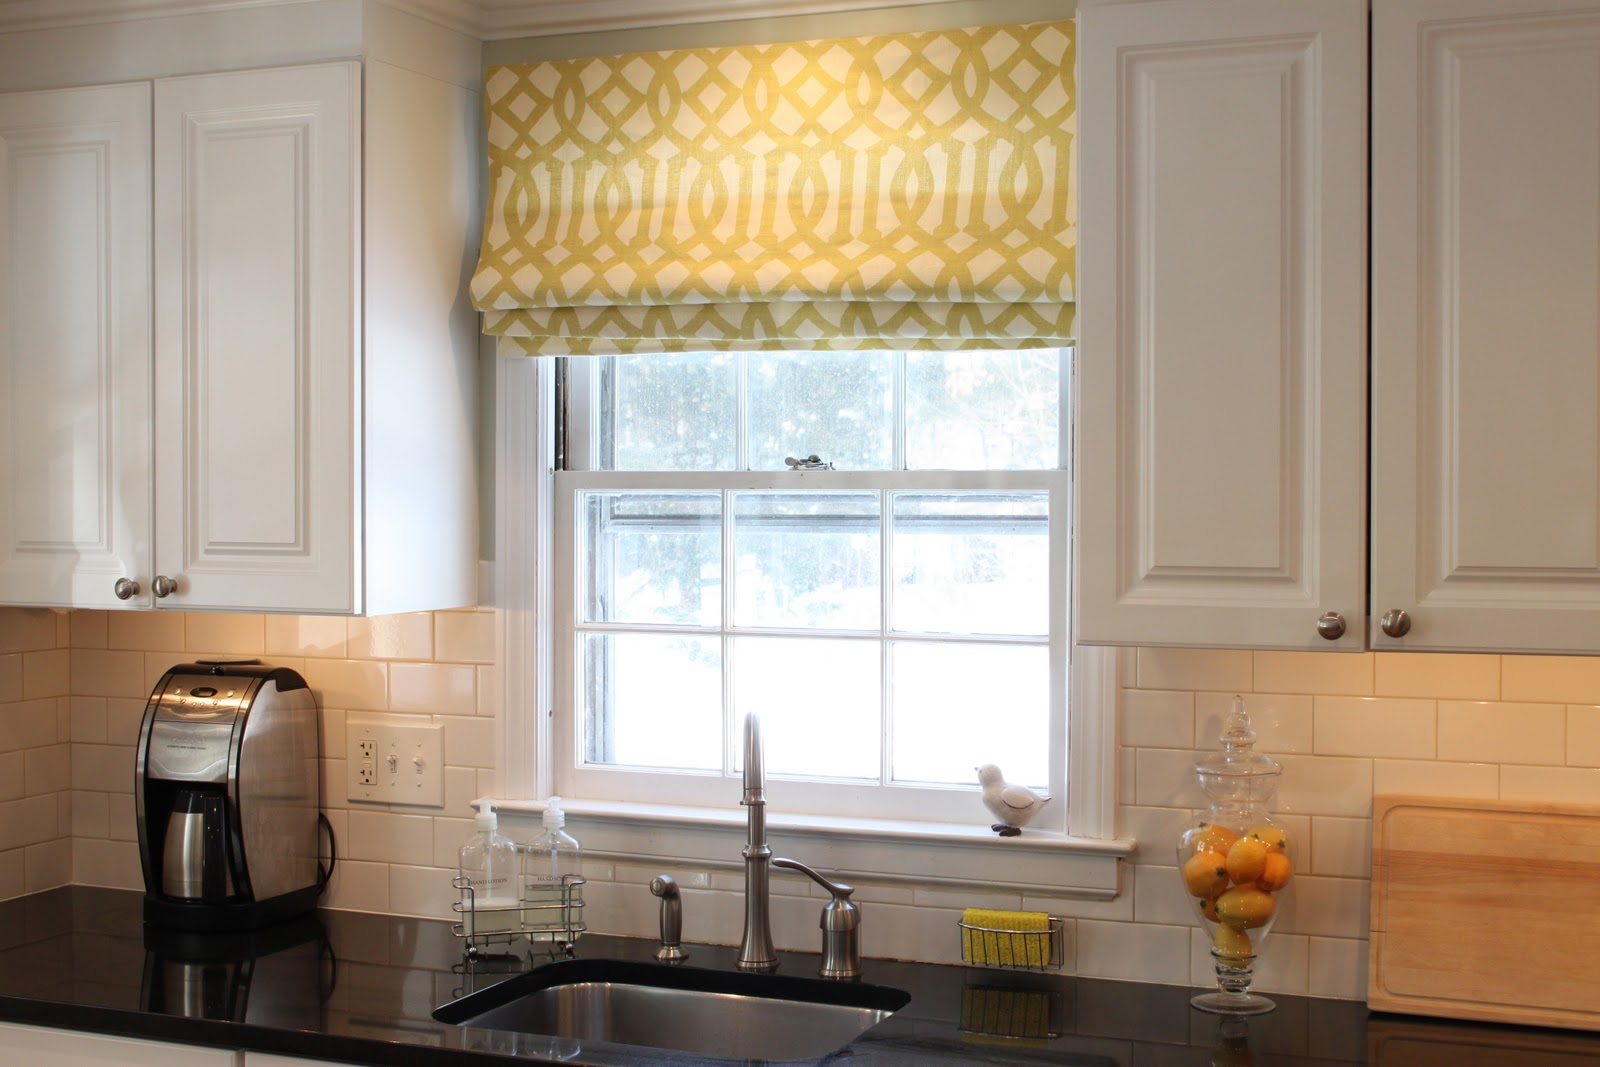 Gold Tone Outside Mount Roman Shades For Tile Wall Kitchen White Wooden Cabinets Sleek Black